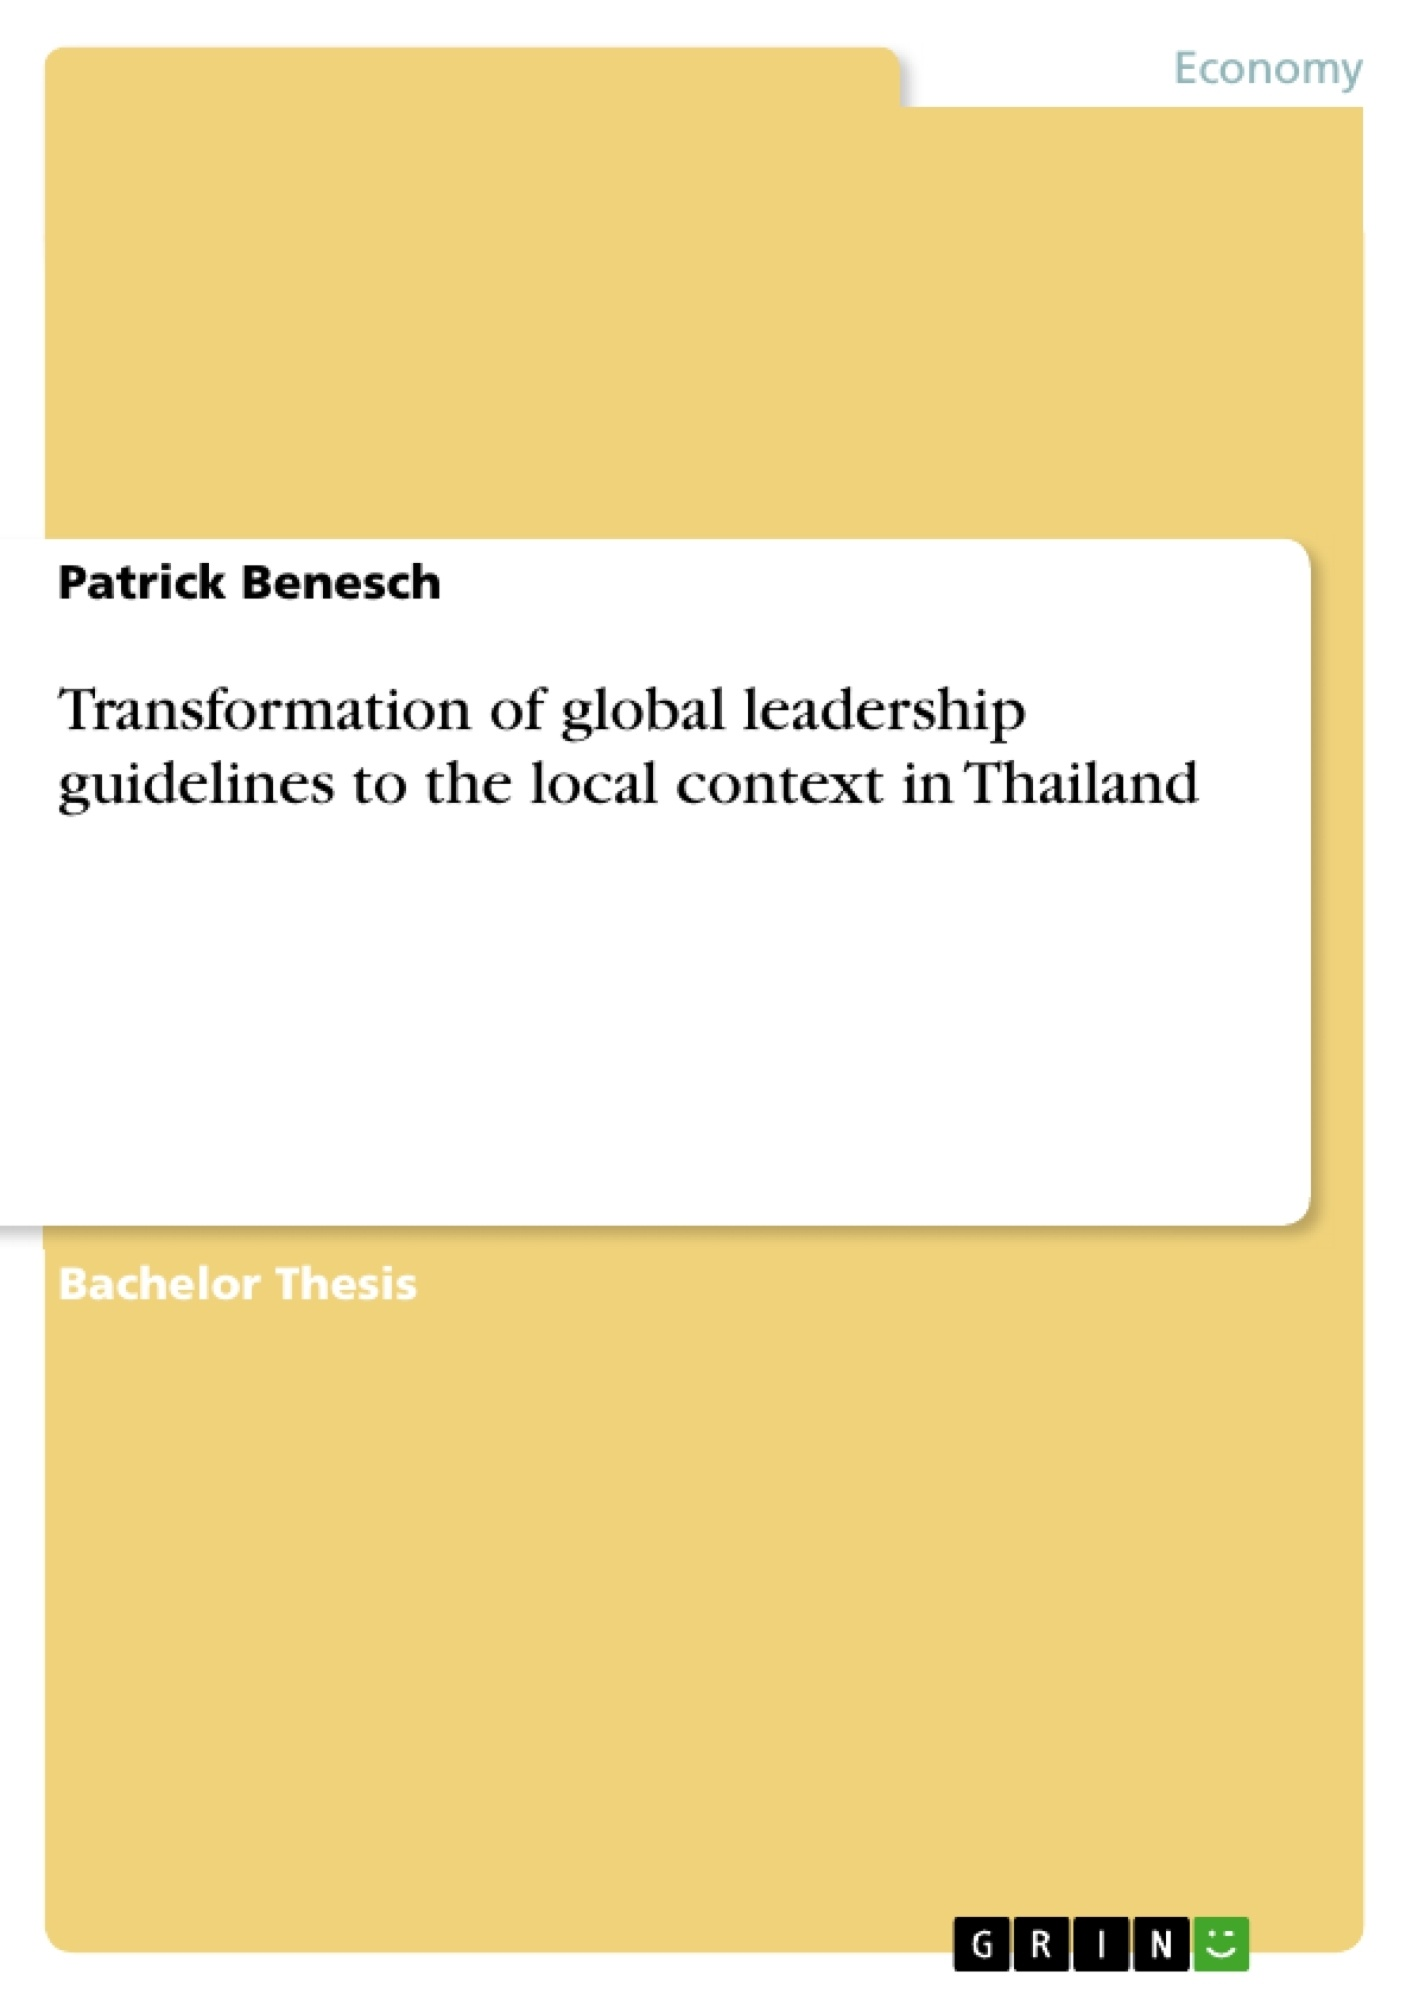 Title: Transformation of global leadership guidelines to the local context in Thailand